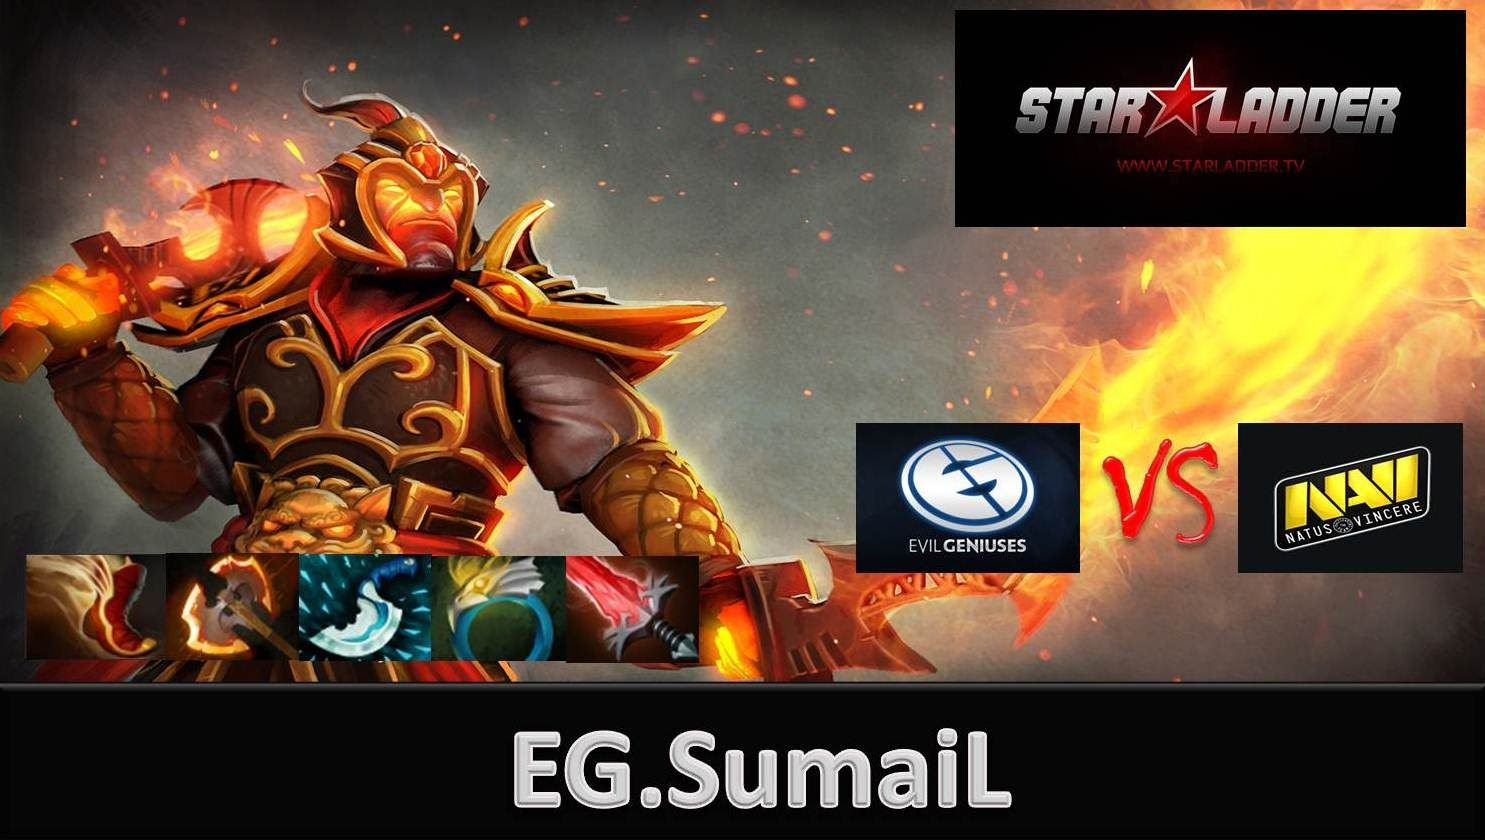 EG.Sumail Plays Ember spirit Vs Dendi Puck - EG Vs NaVi Starladder